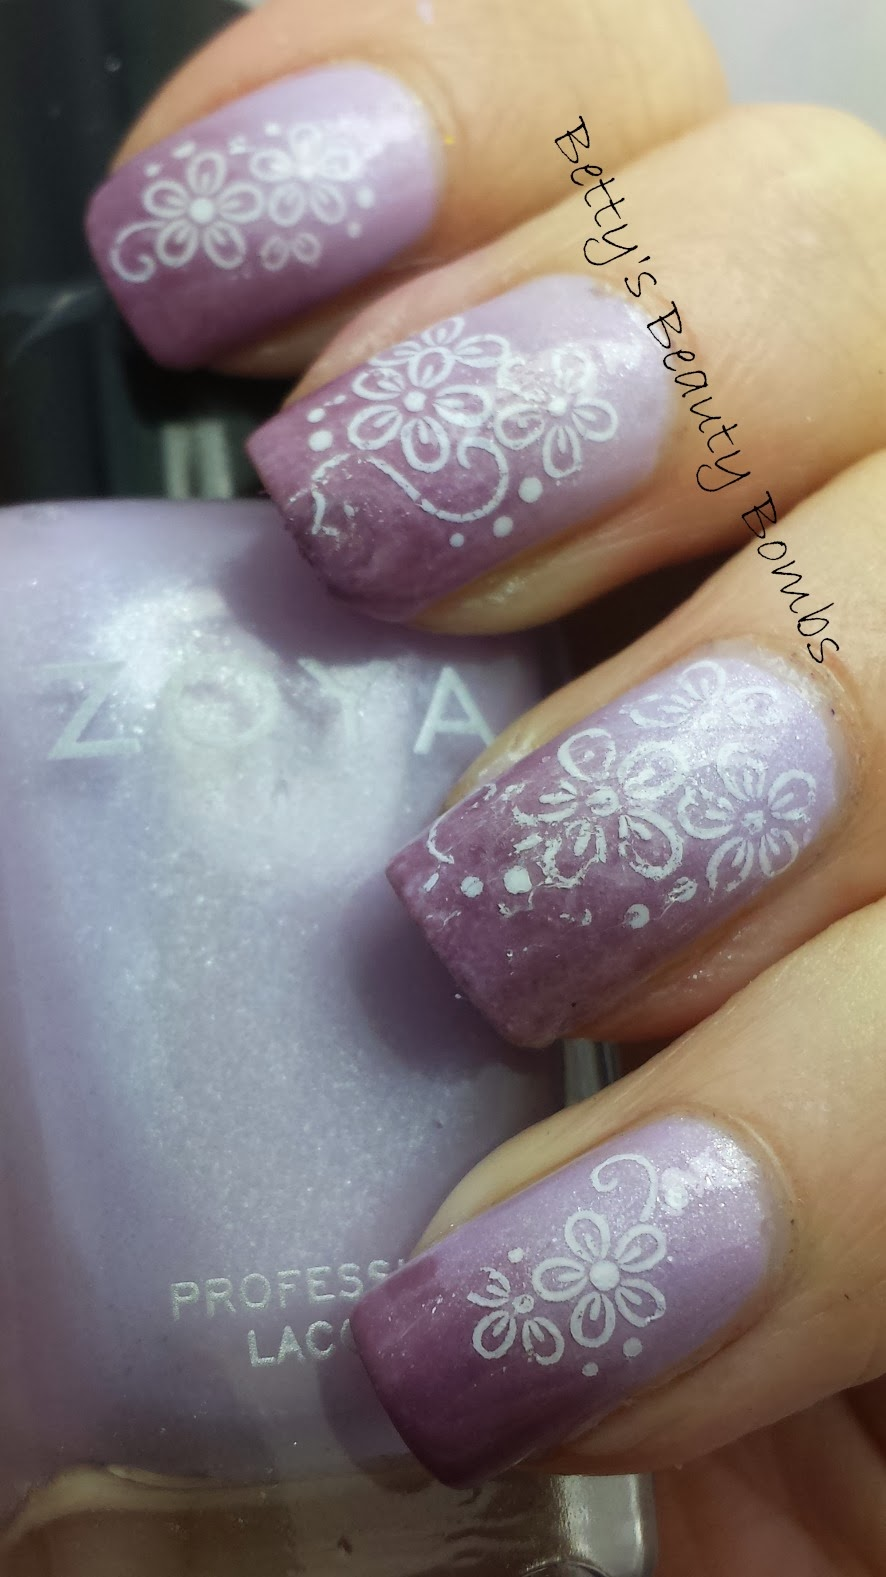 Pueen Nail Art Decals